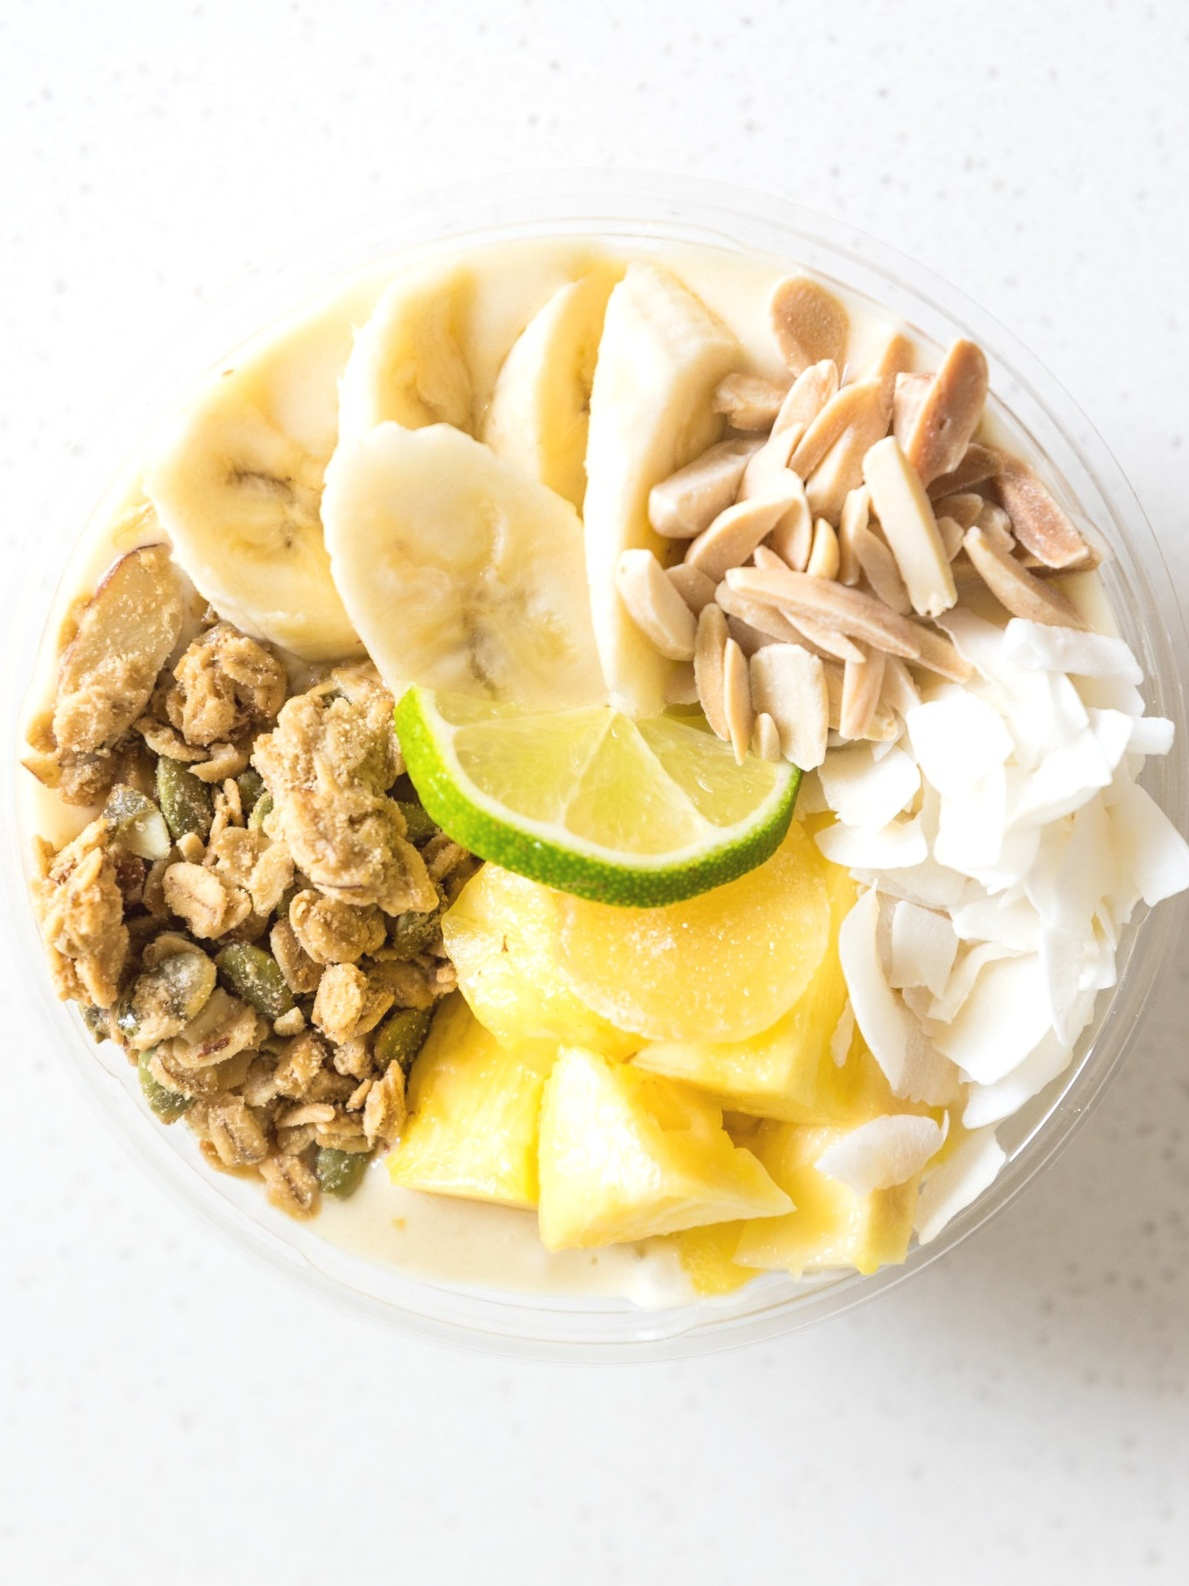 Cocolada : Pineapple / Banana / Coconut Milk / Lime  Topped with Granola, Sliced Almonds, Banana, Shredded Coconut, Lime Wedge, Candied Ginger